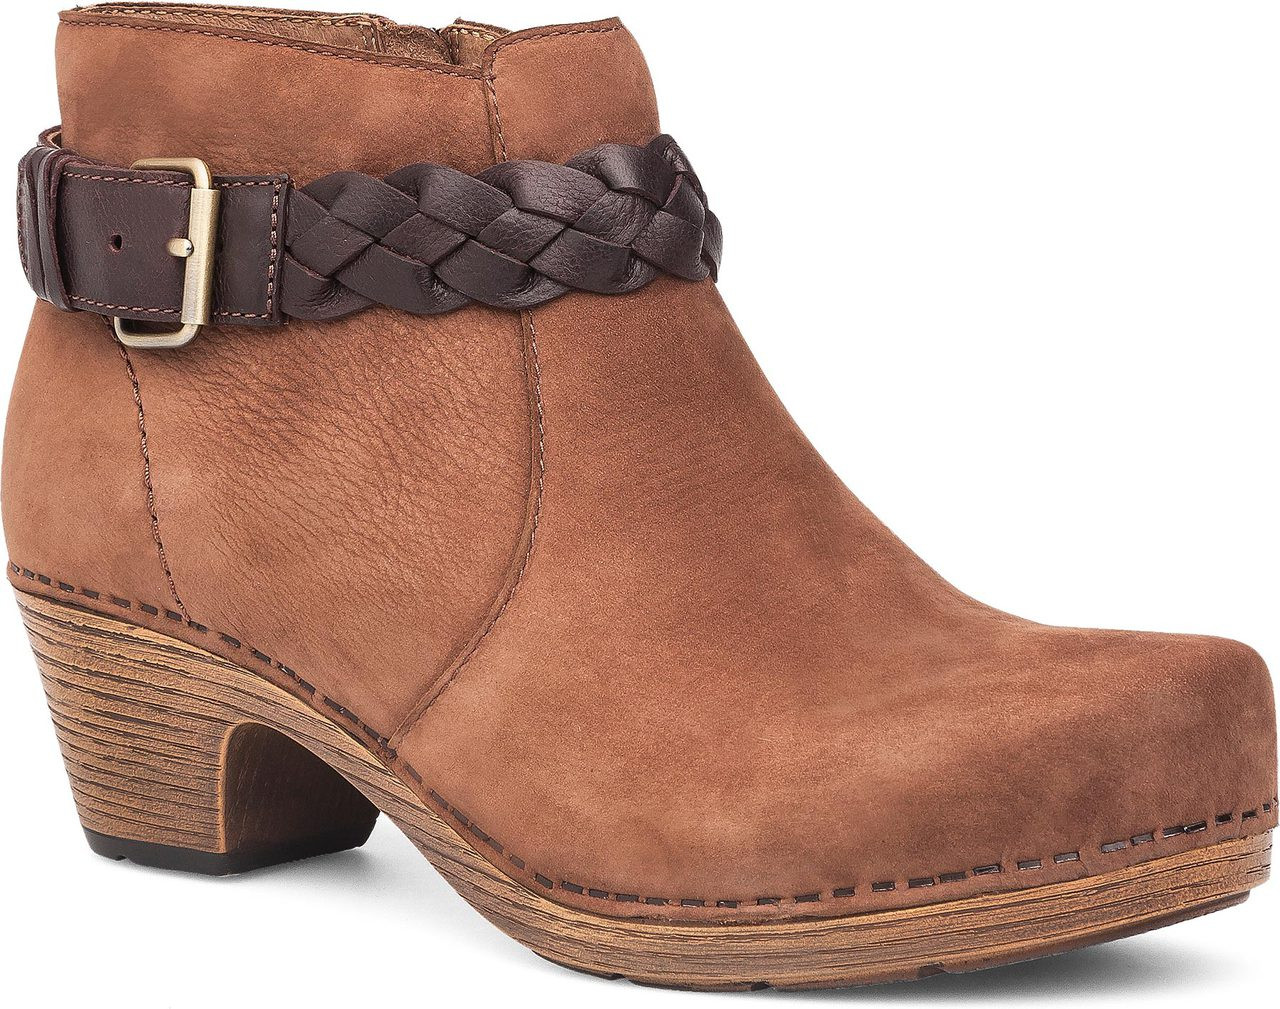 Home · Women's Clearance Shoes · Boots; Dansko Michelle. Amber Milled Nubuck  Leather